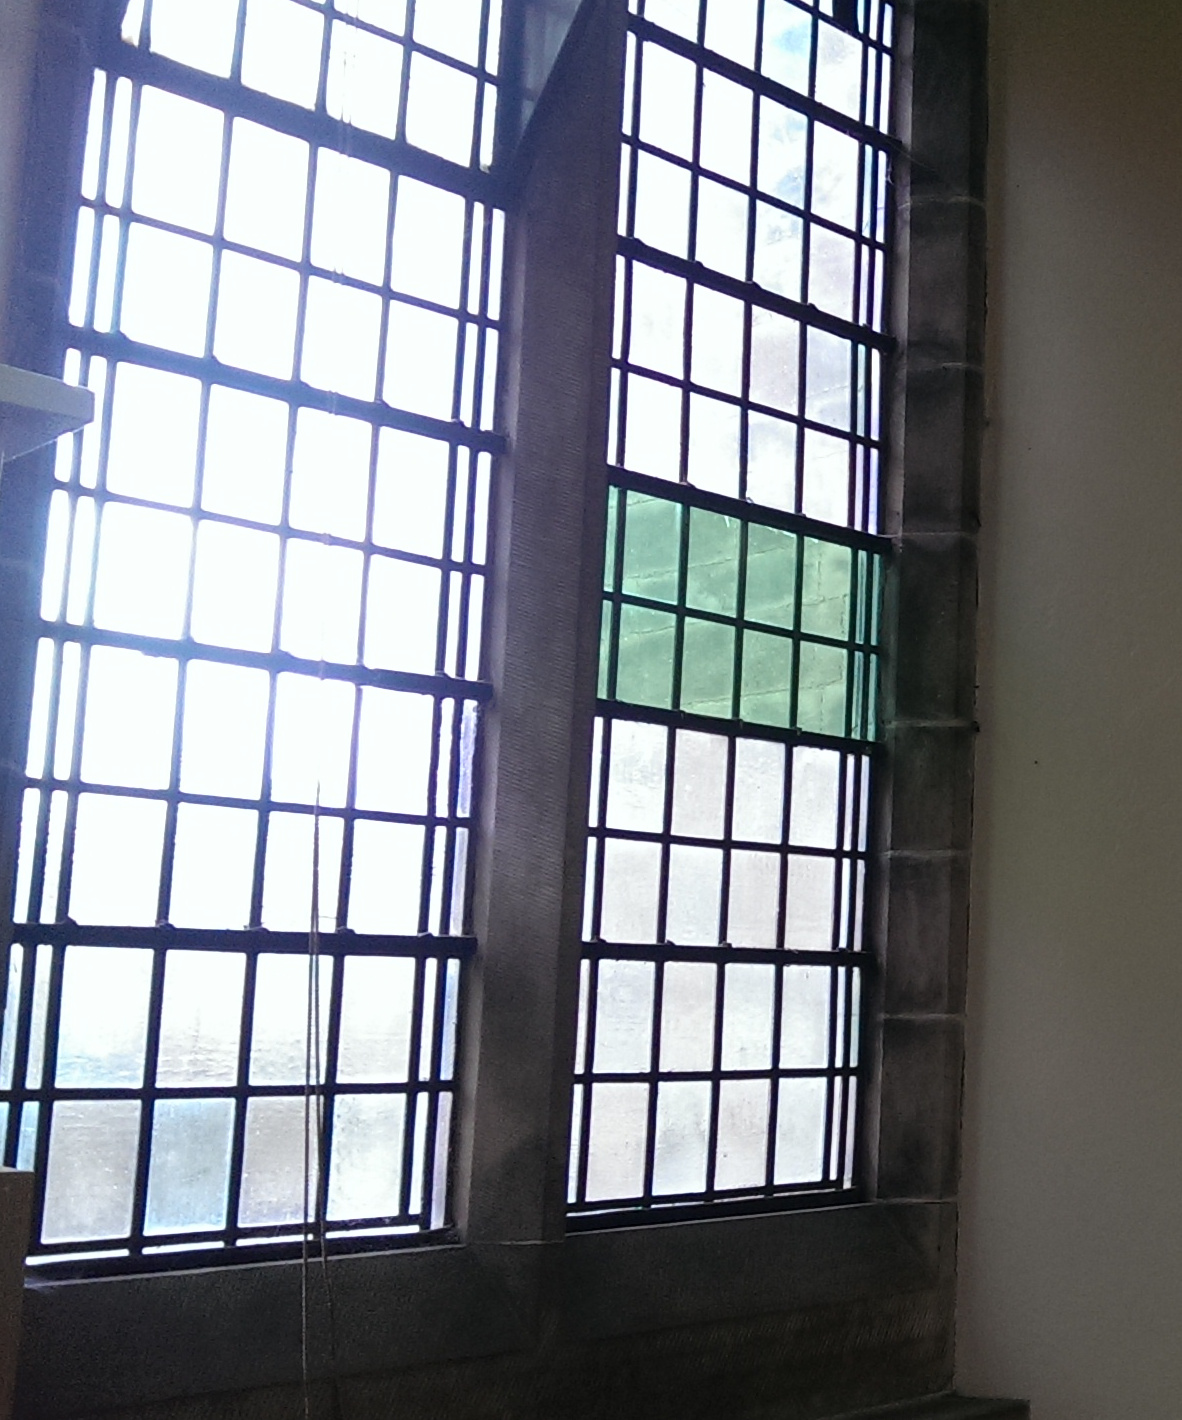 Choir vestry window